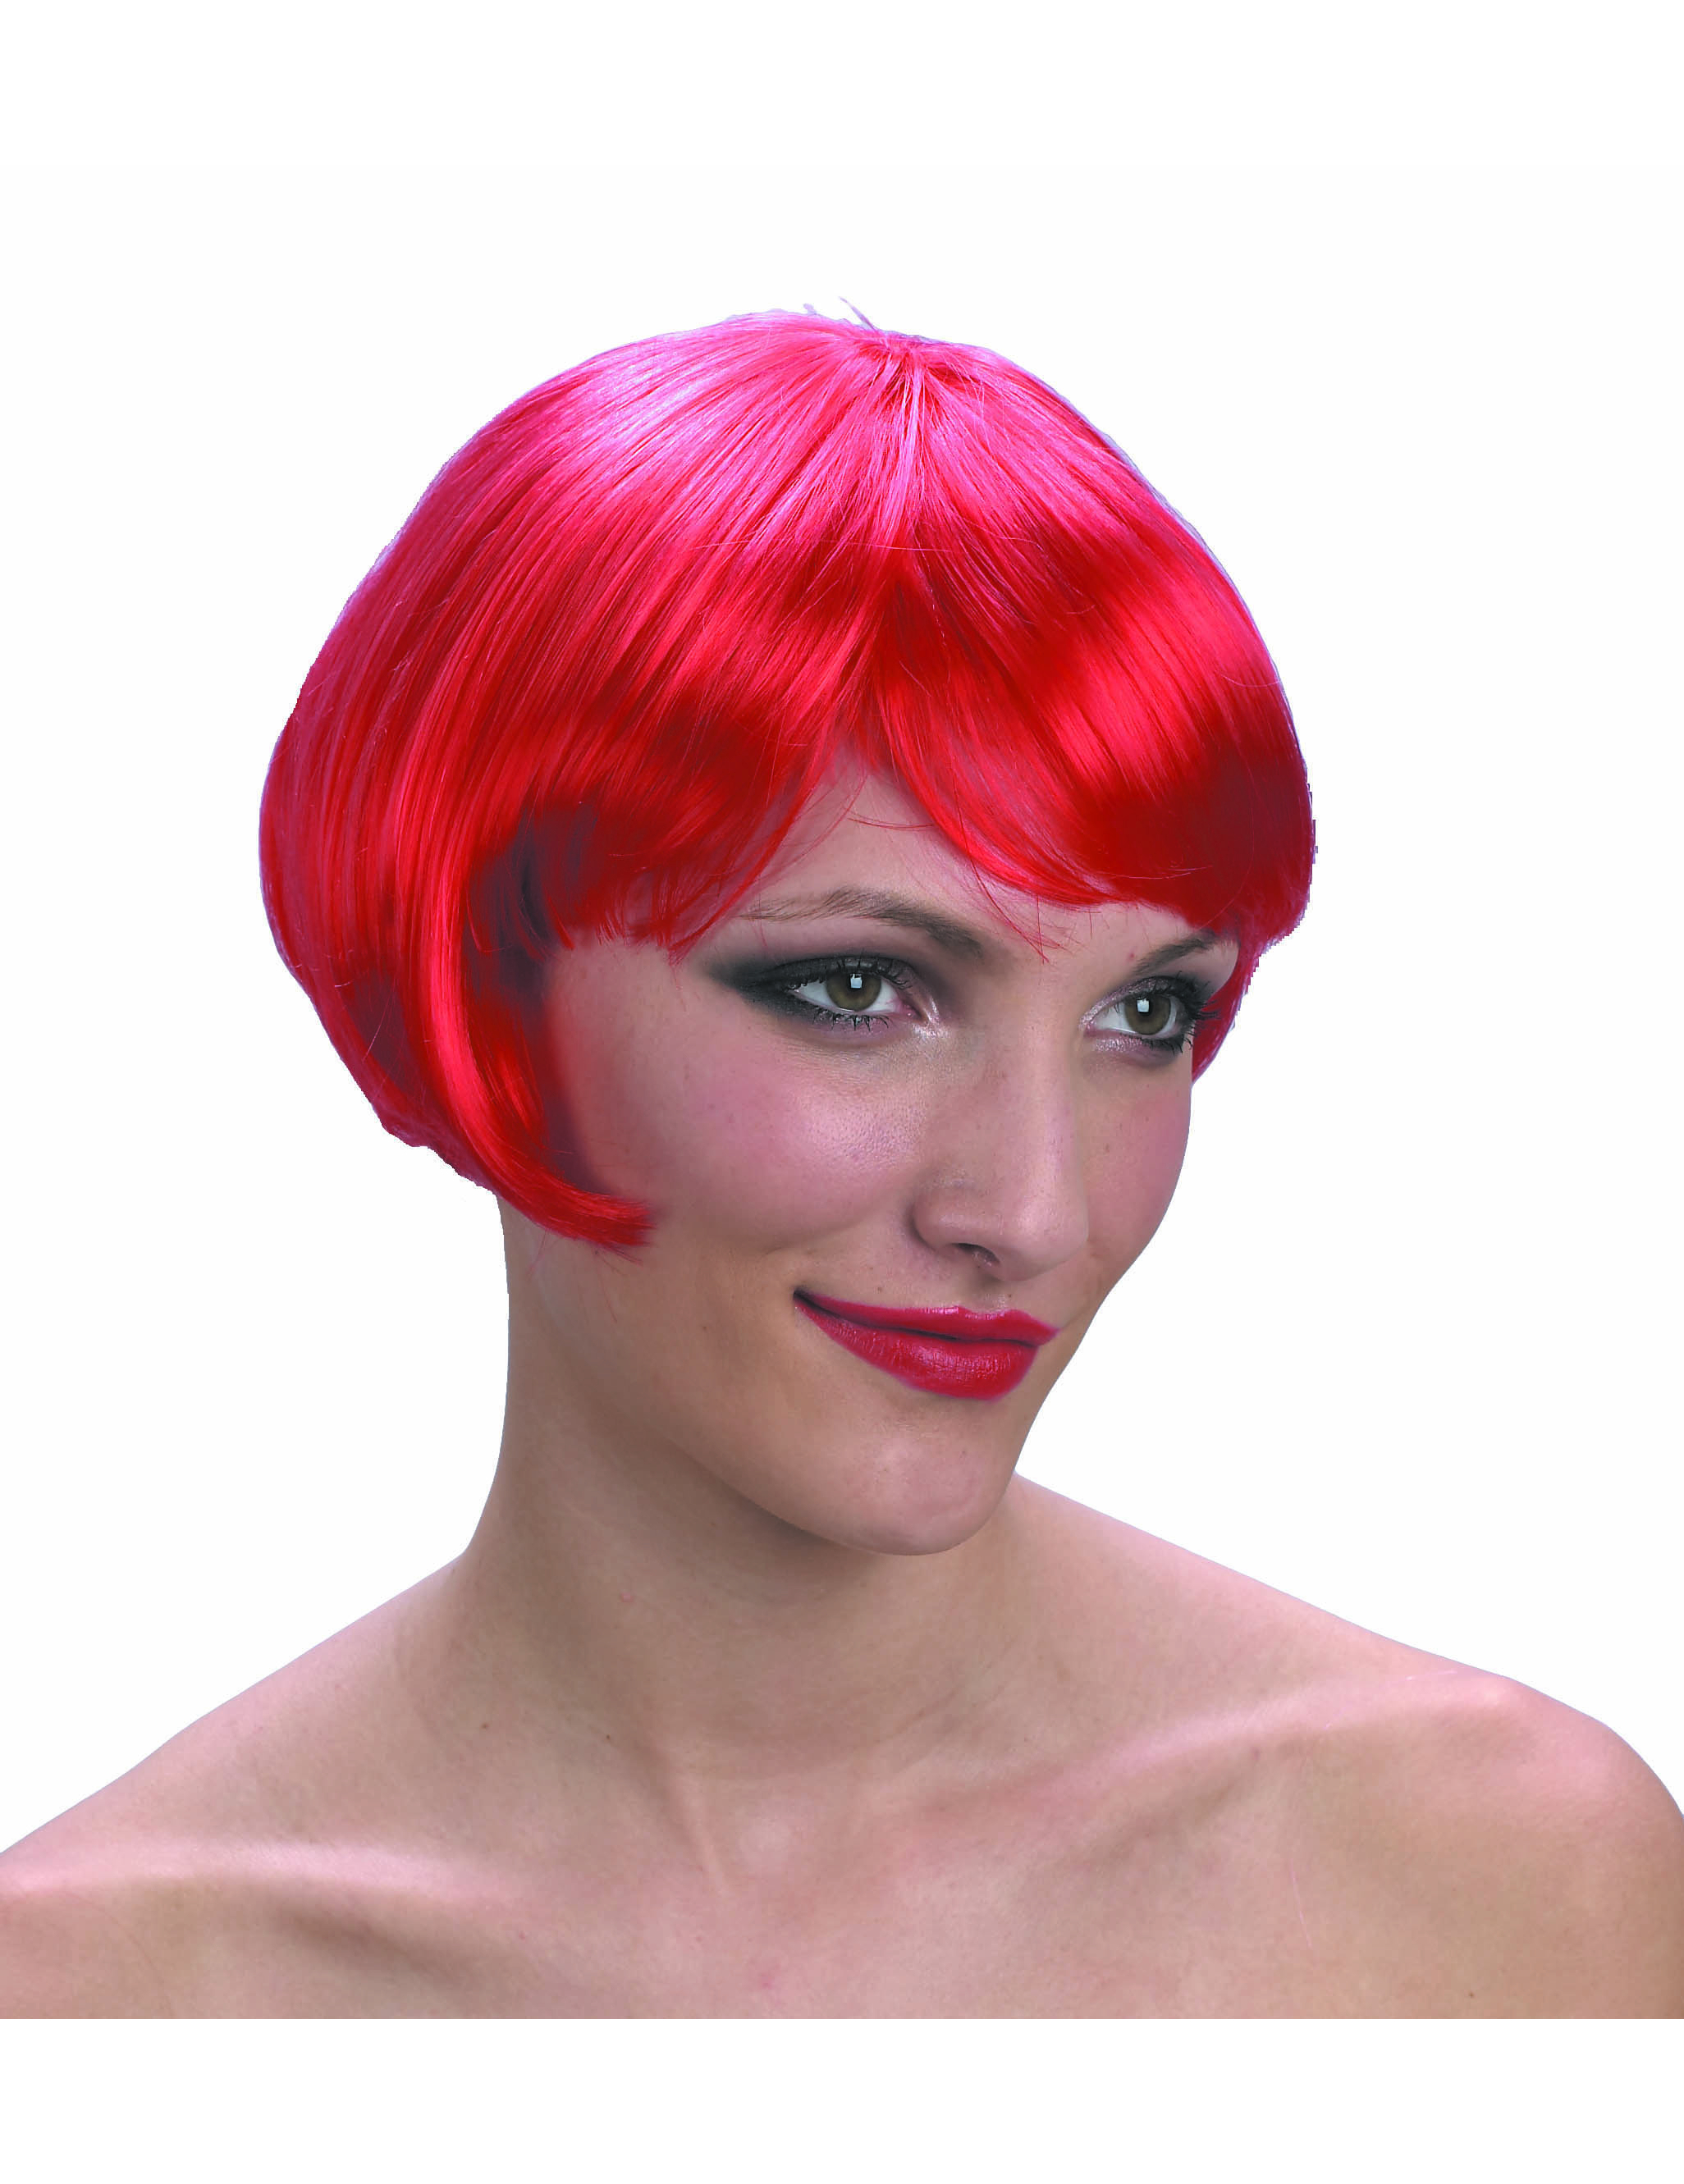 Main - Wigs - Short, red wig for women.